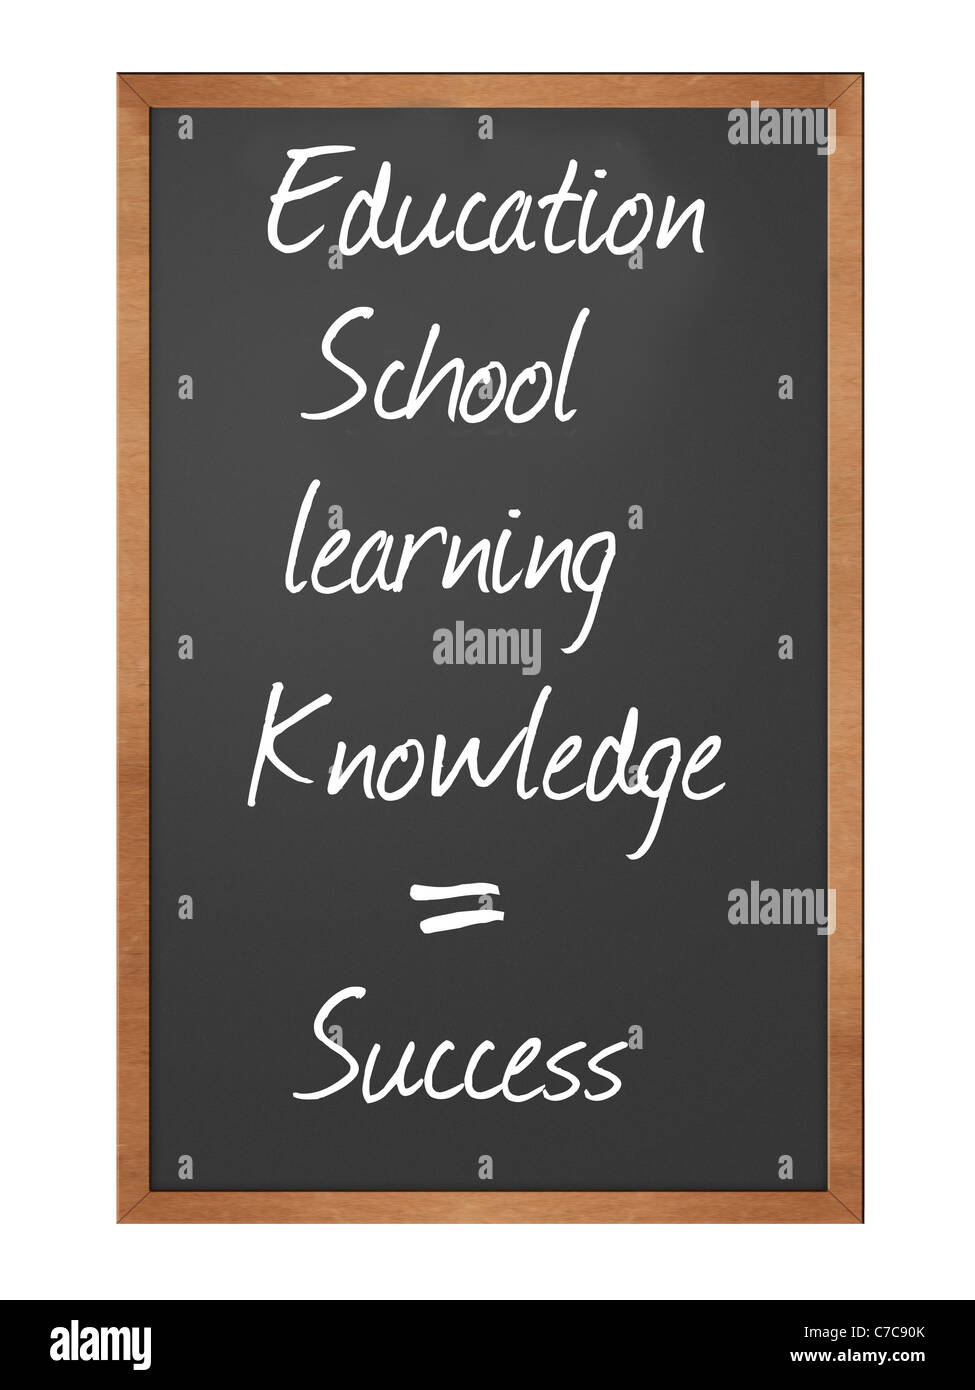 blackboard illustration with education, learning, school, and knowledge equals success Stock Photo